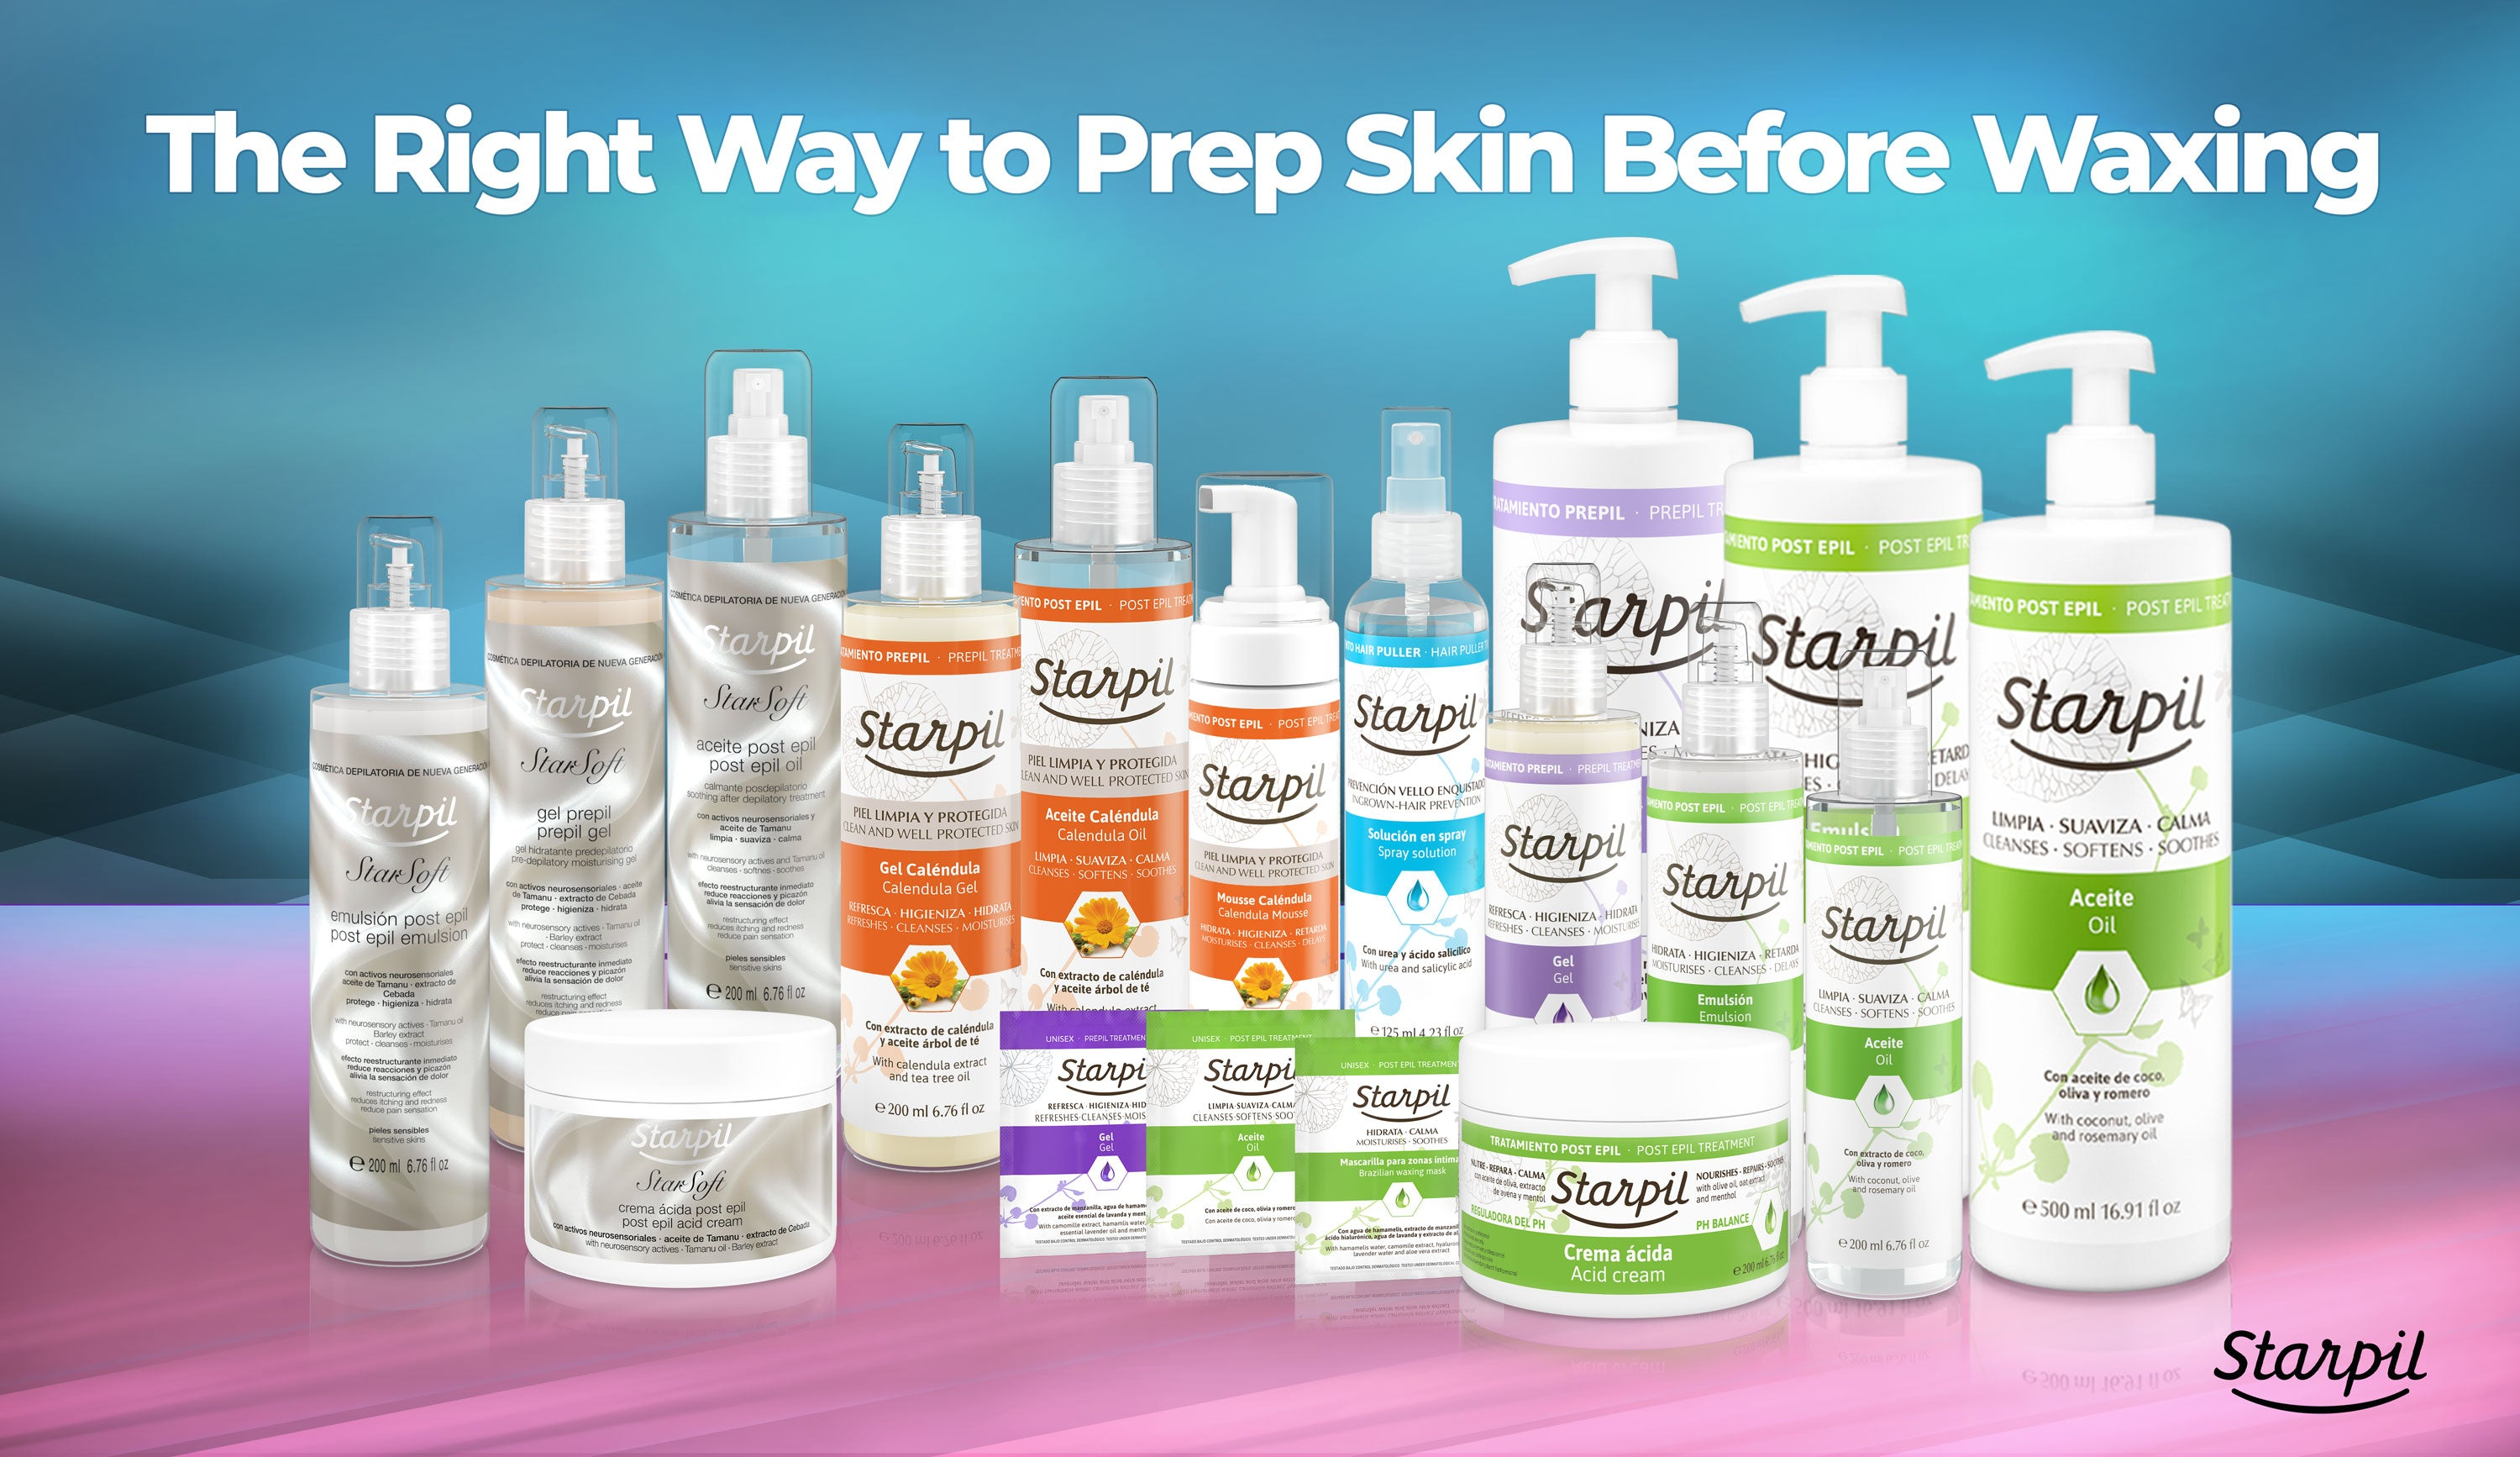 The Right Way to Prep Skin Before Waxing